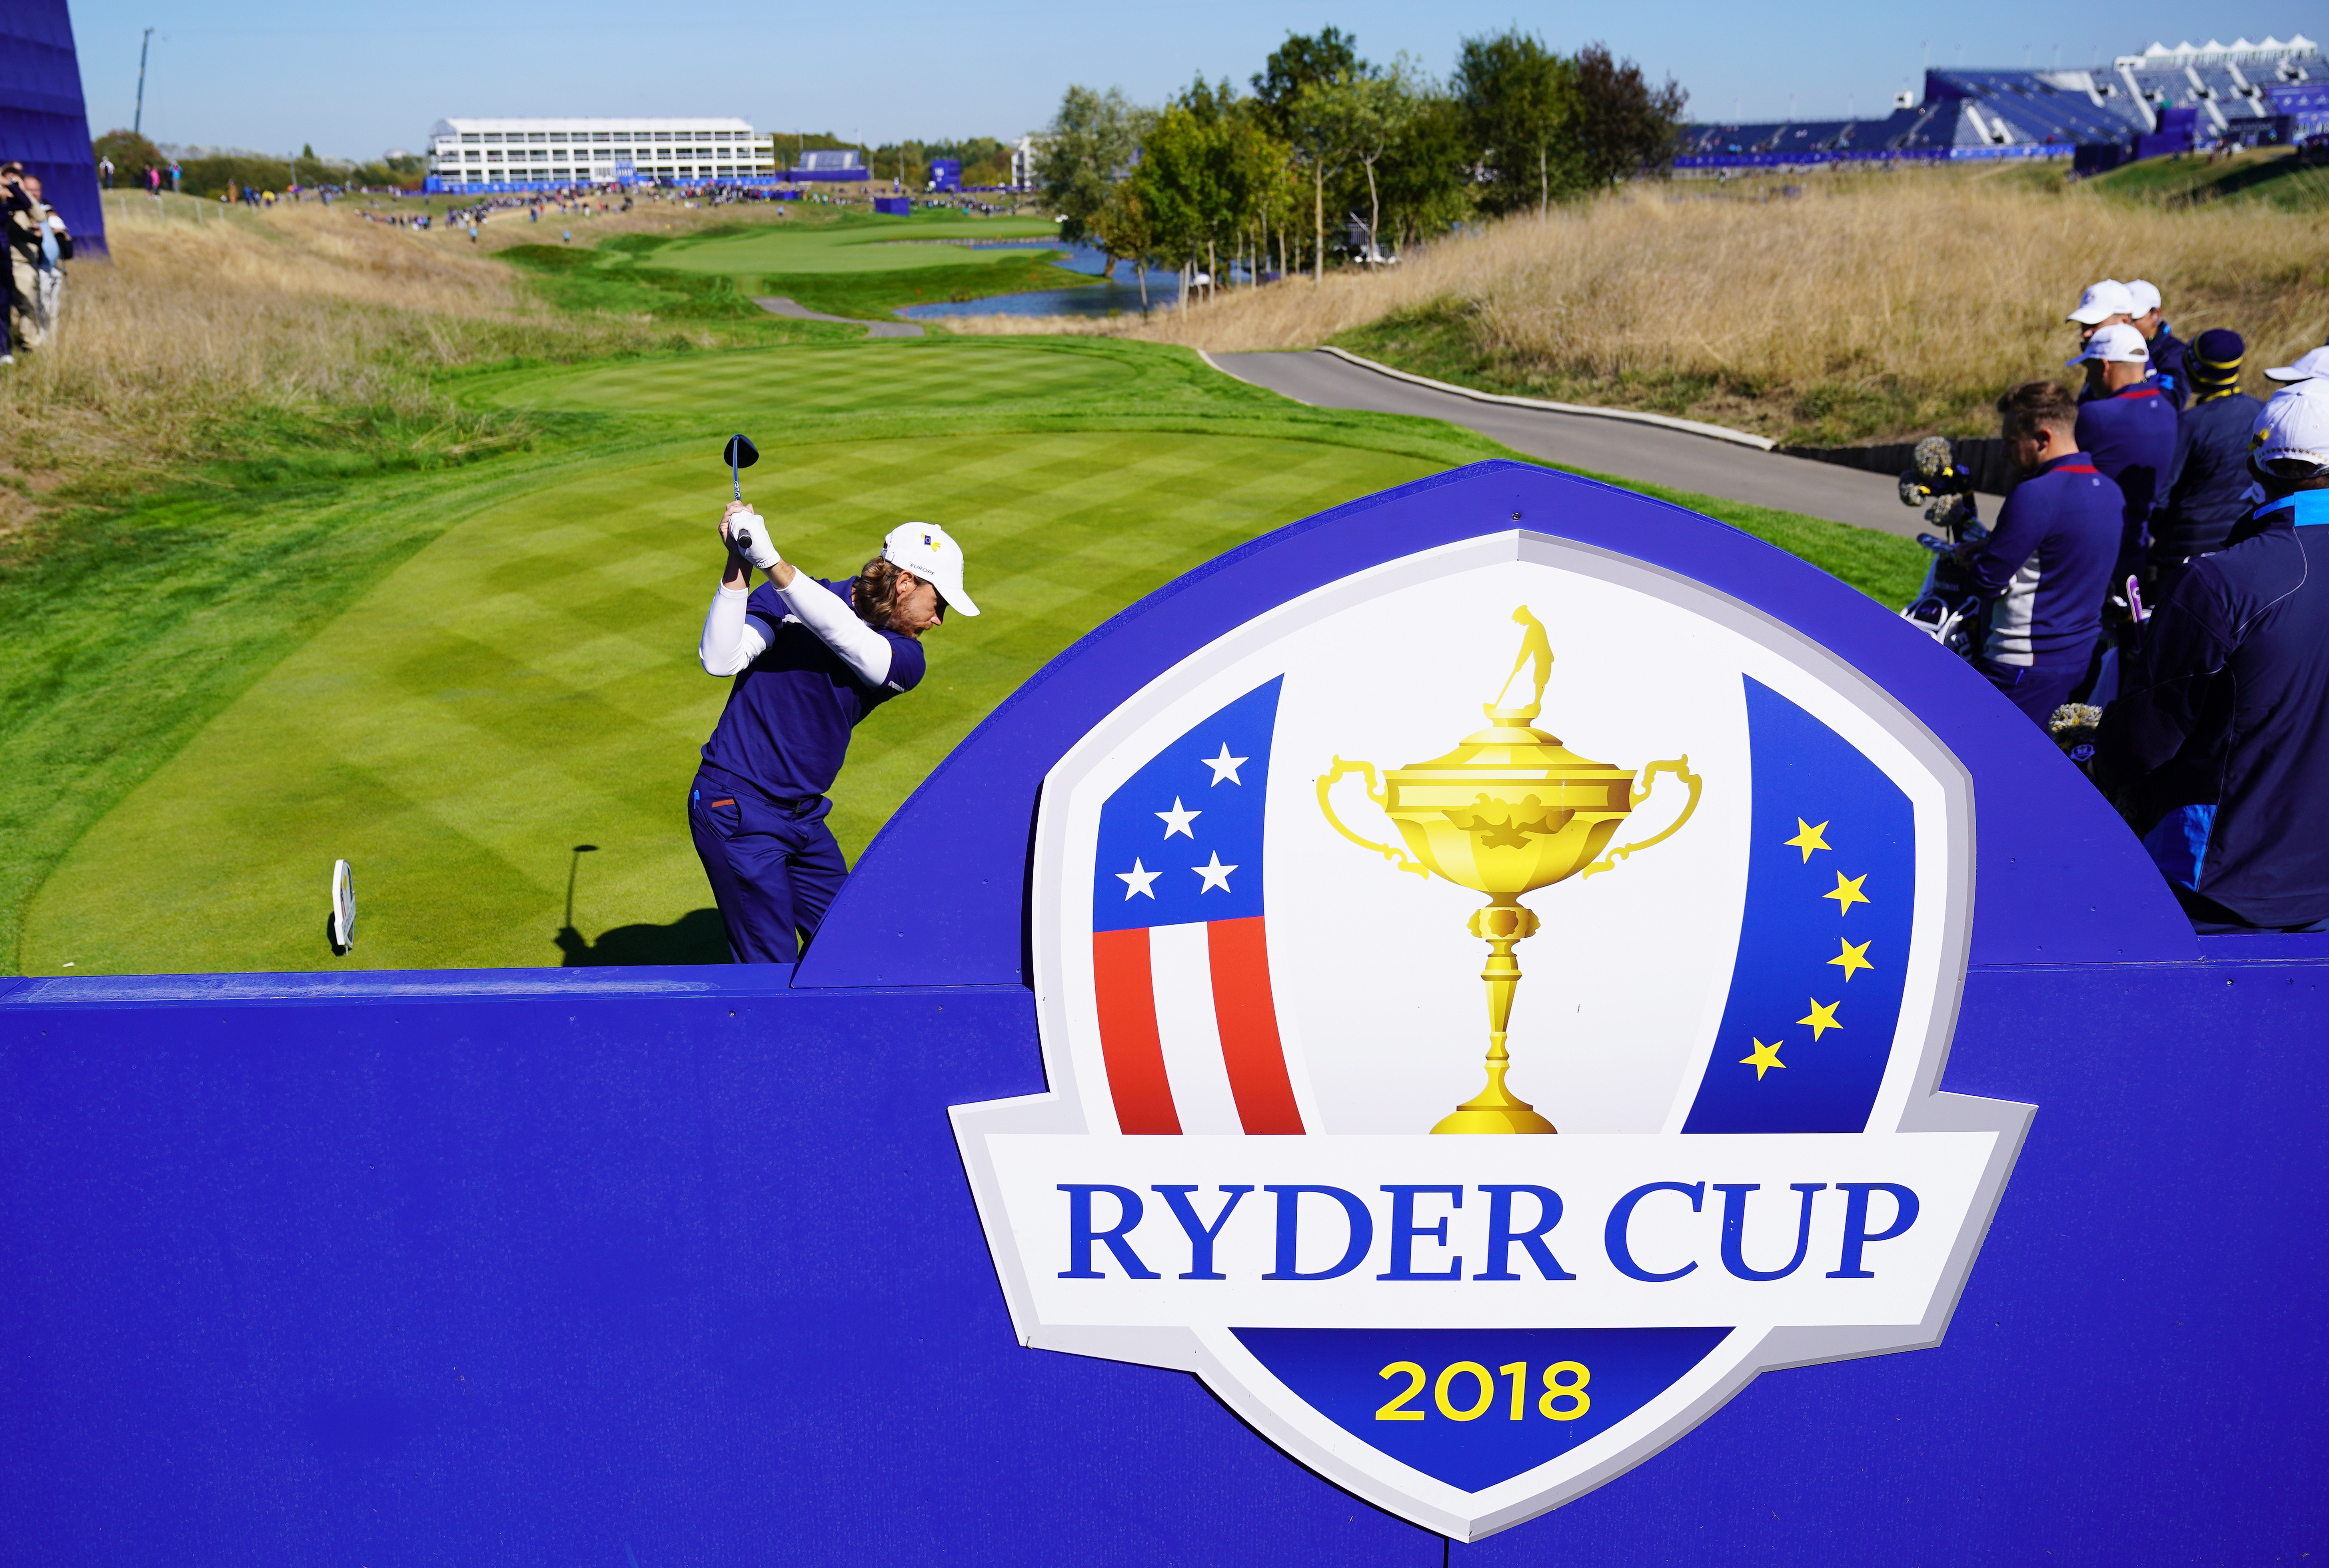 watch the ryder cup live online free